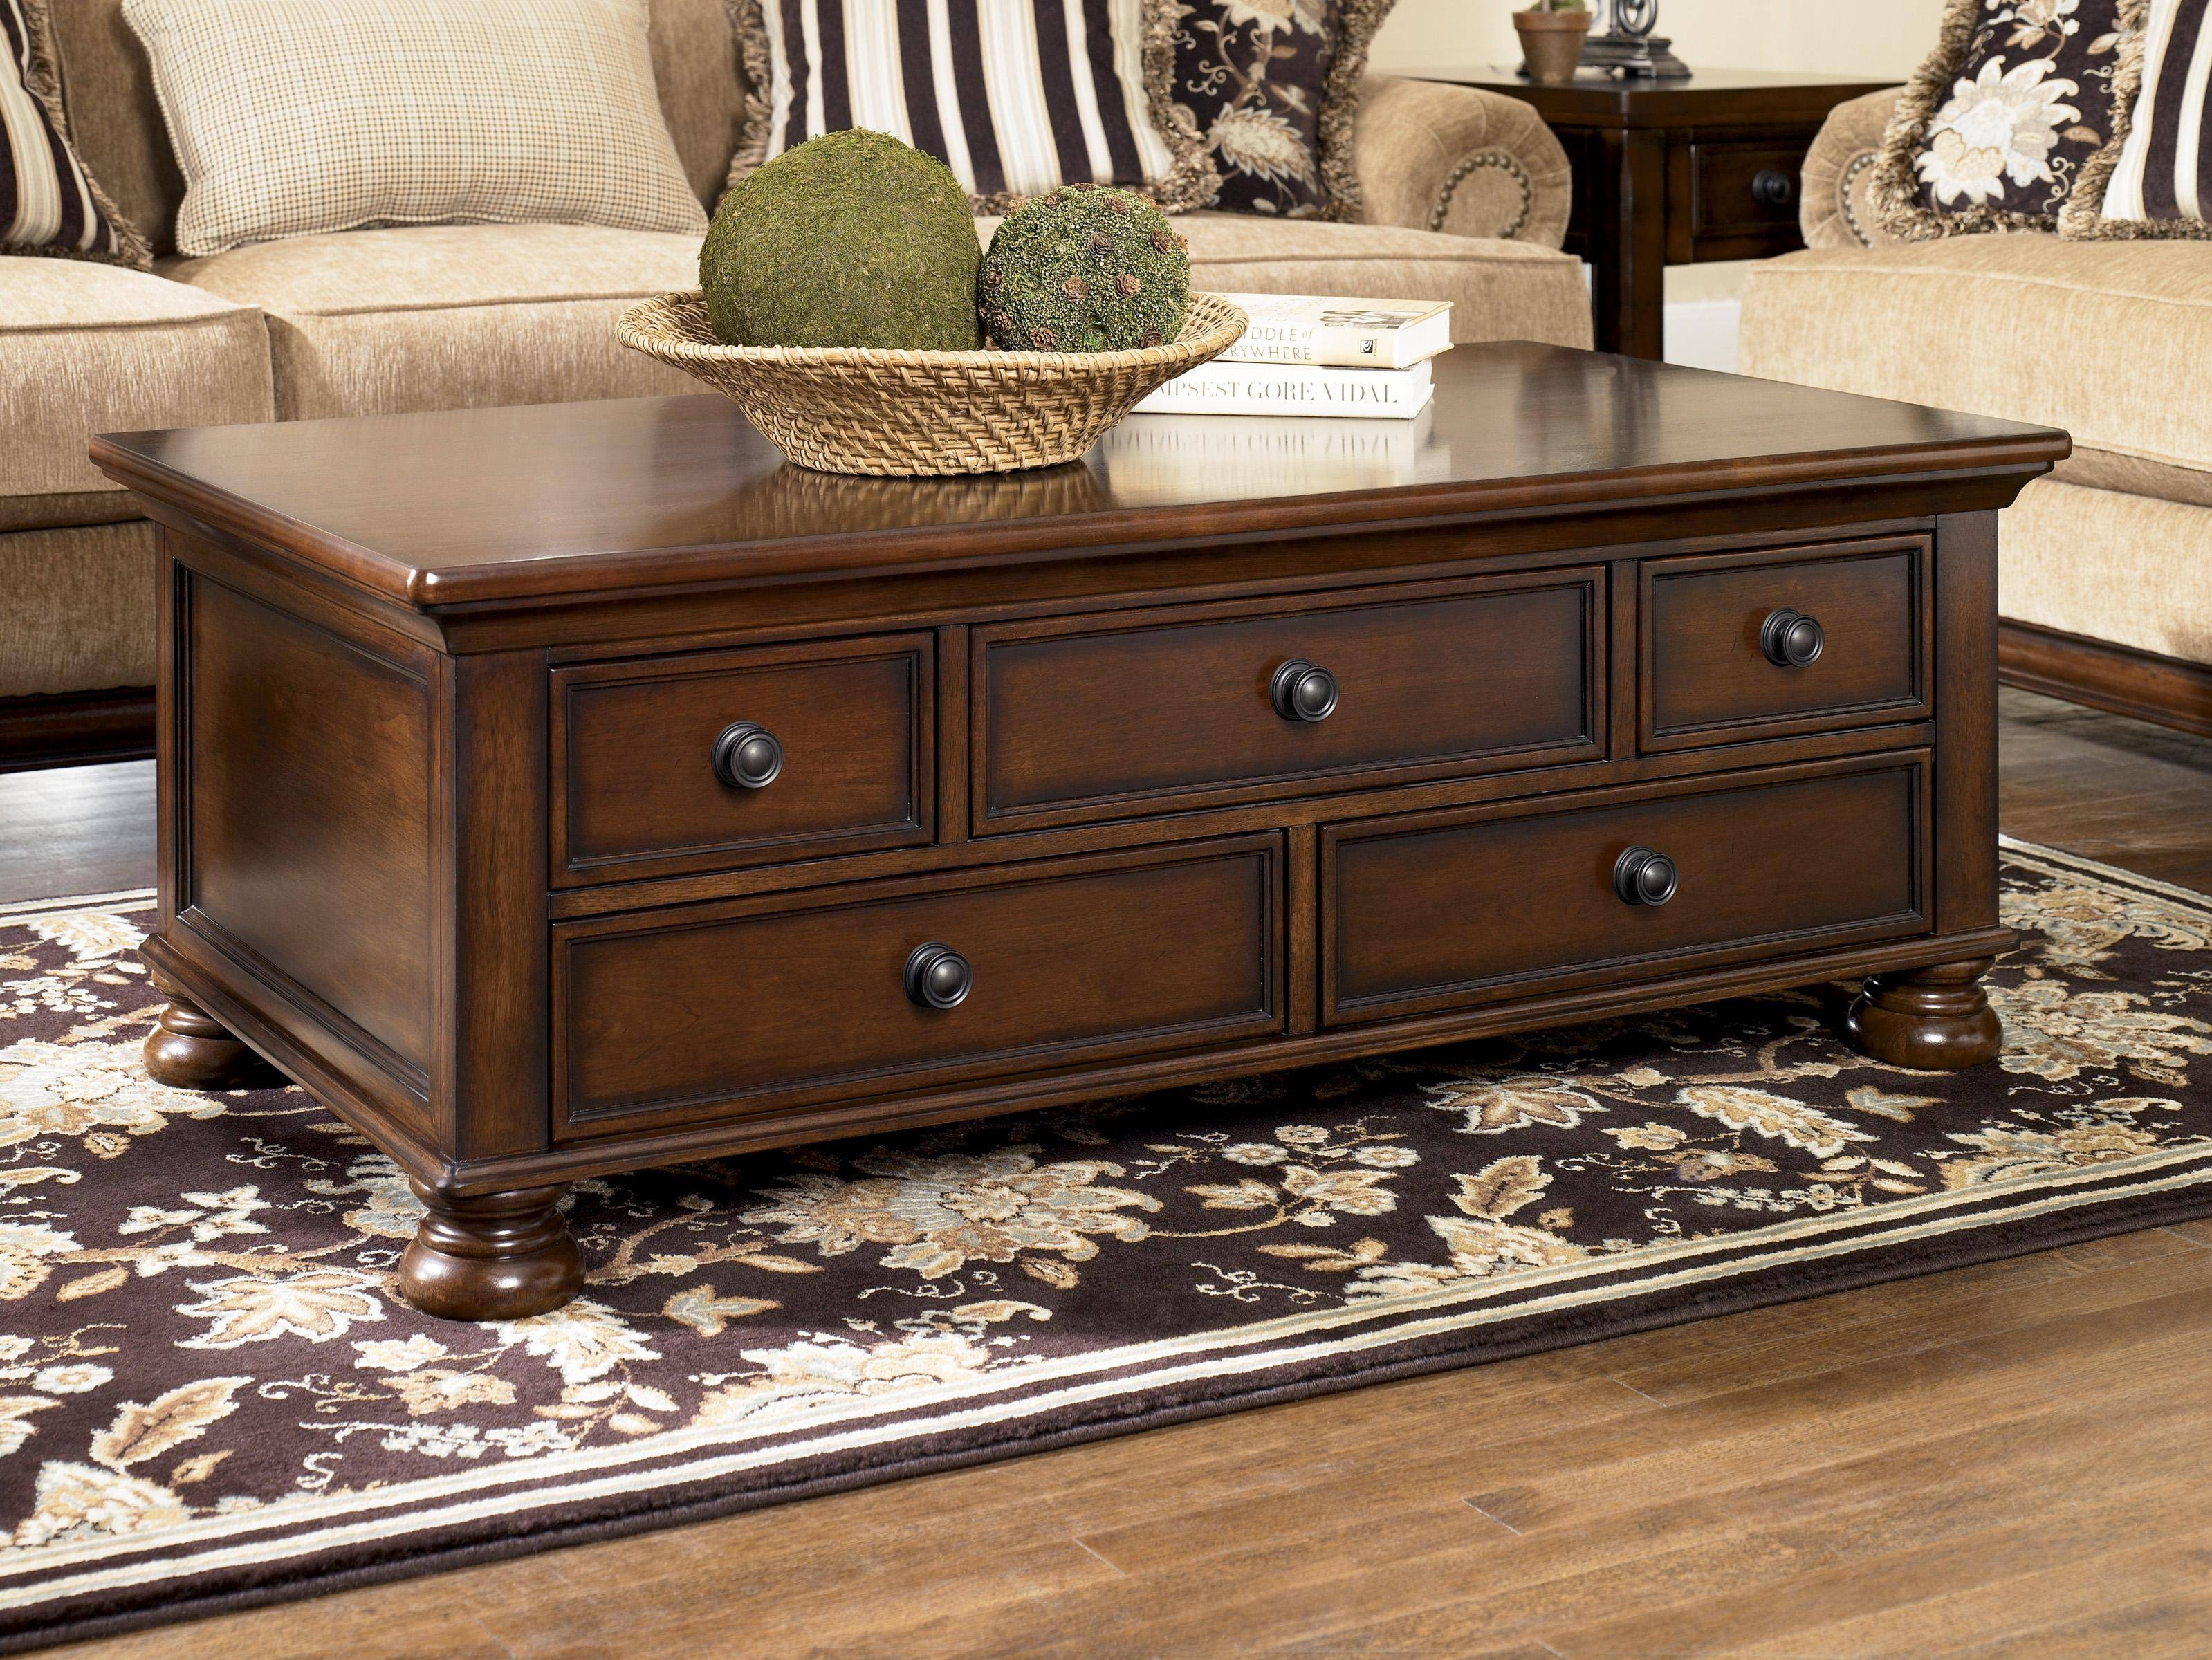 Exclusive Mahogany Coffee Table With Drawers And Wooden Leg Coffee inside Waverly Lift Top Coffee Tables (Image 13 of 30)